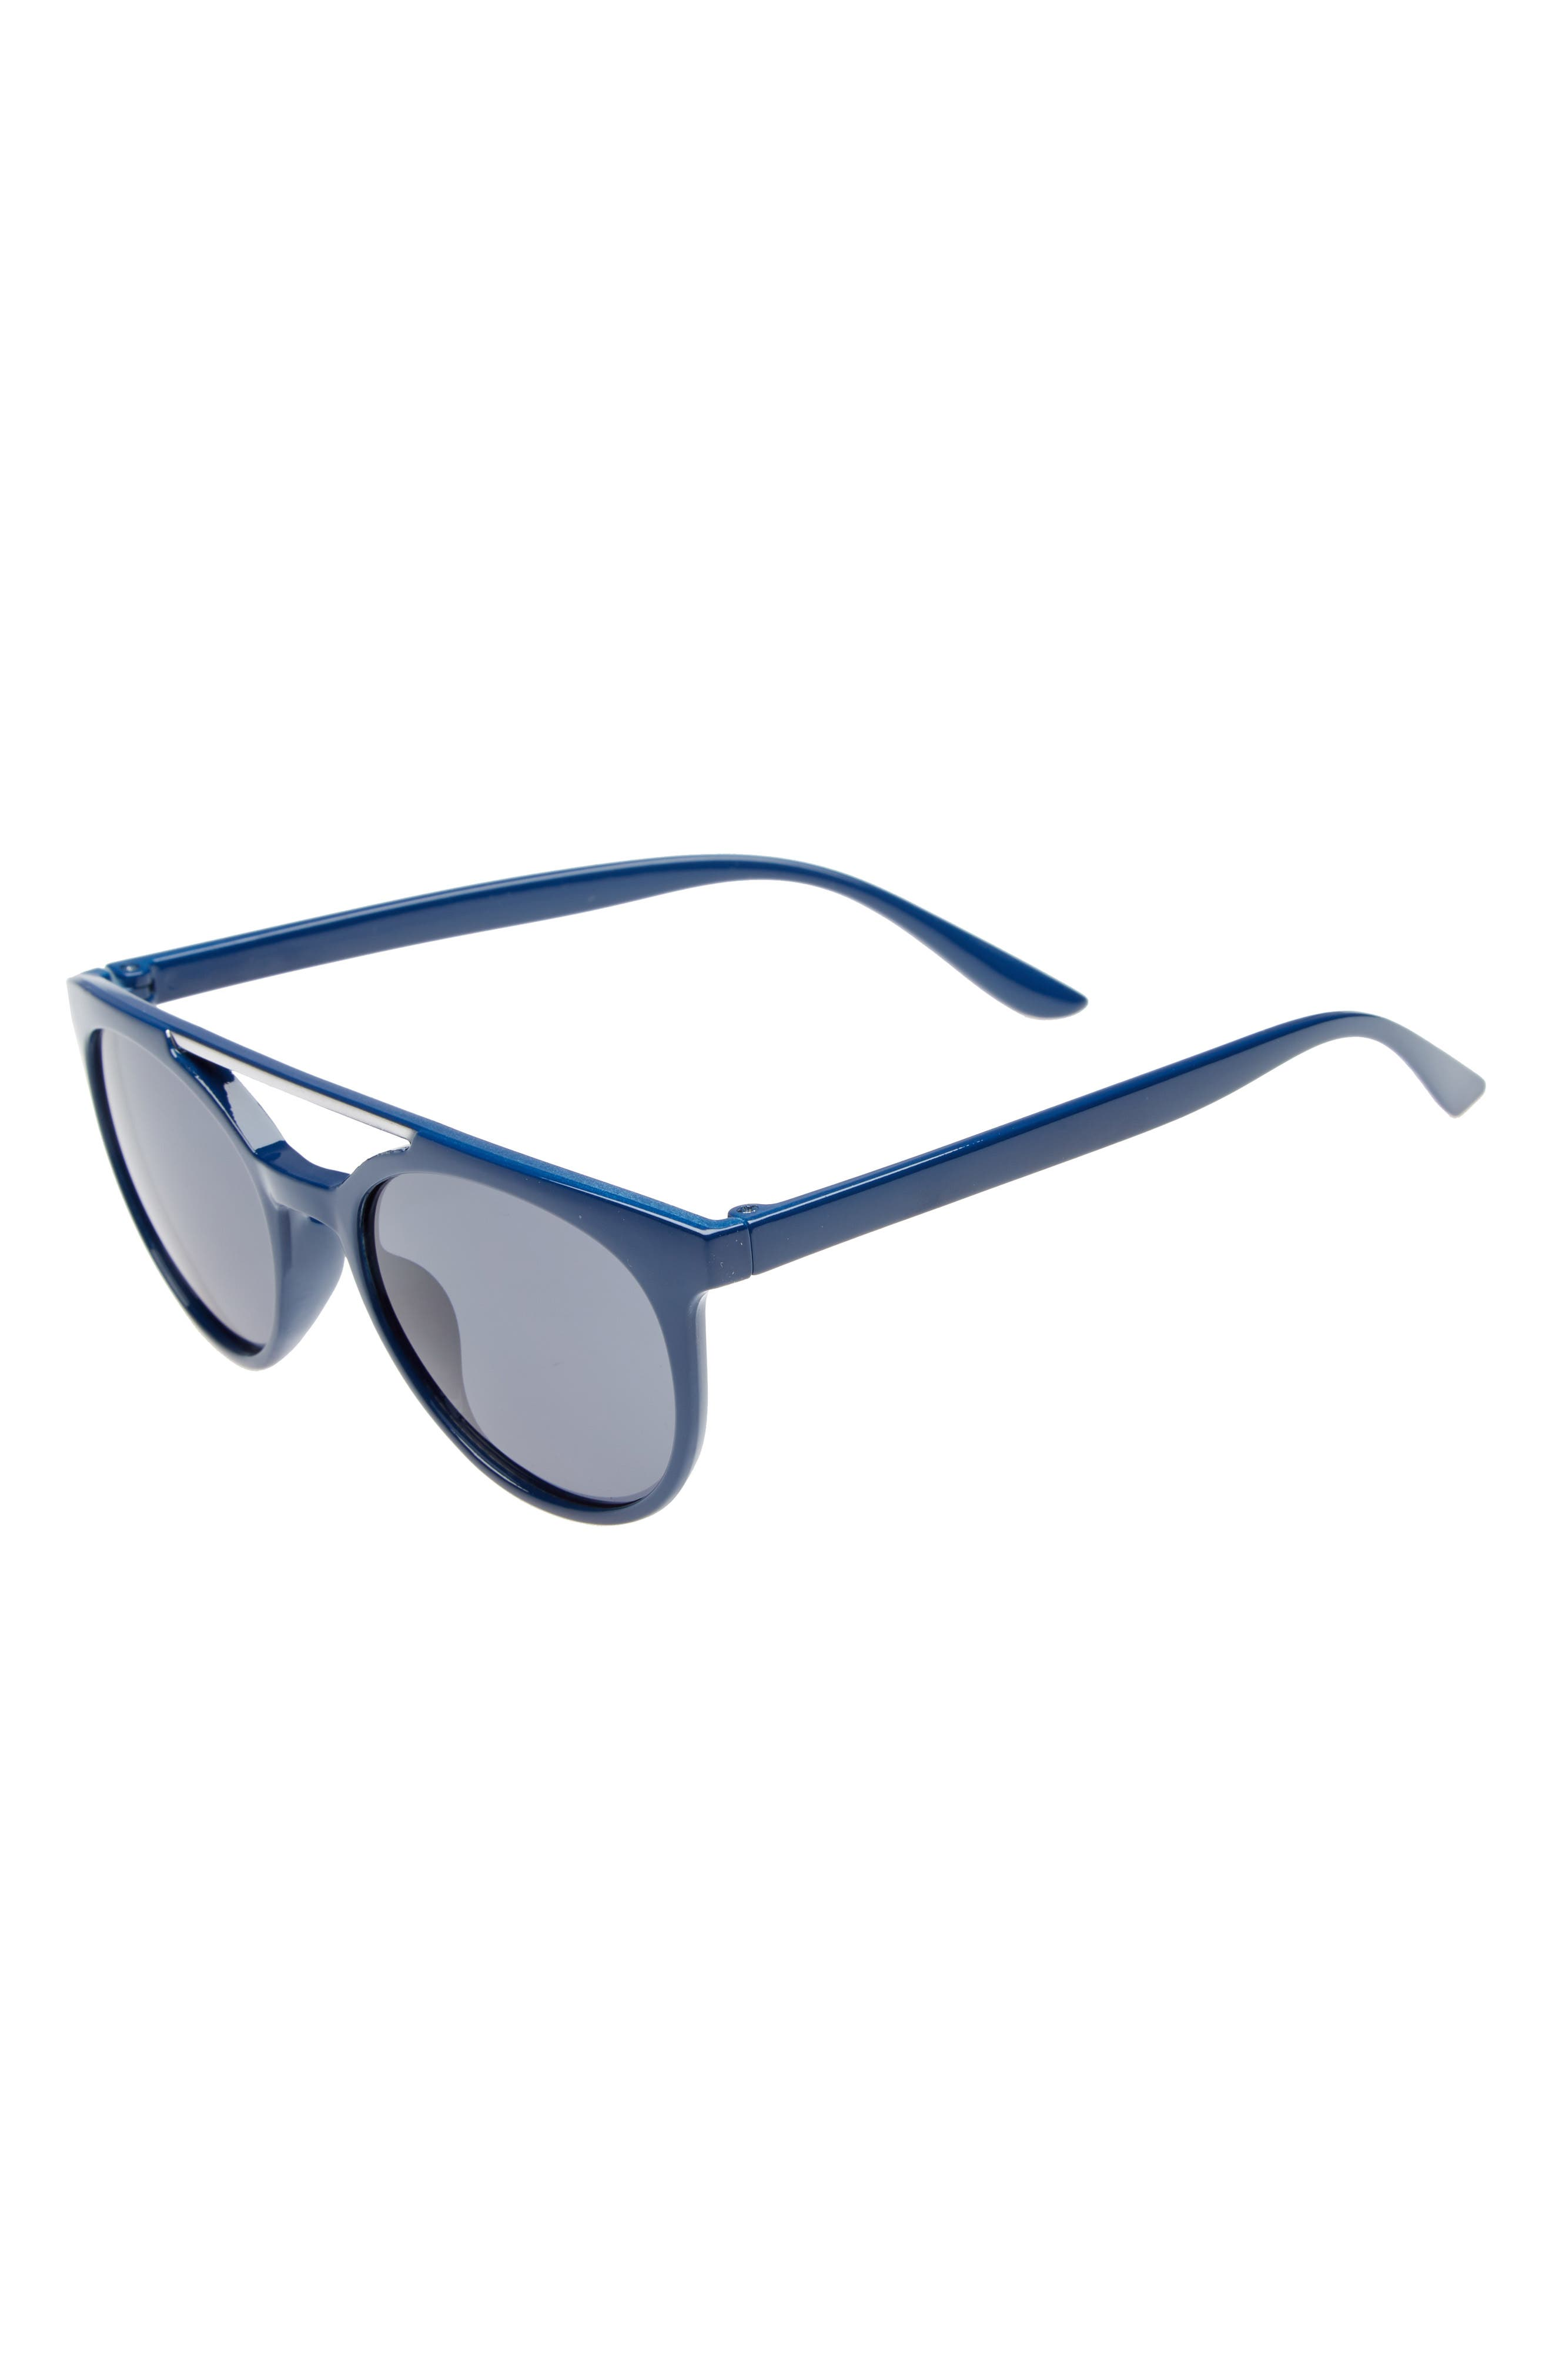 Basic Browbar Sunglasses,                             Main thumbnail 1, color,                             Blue